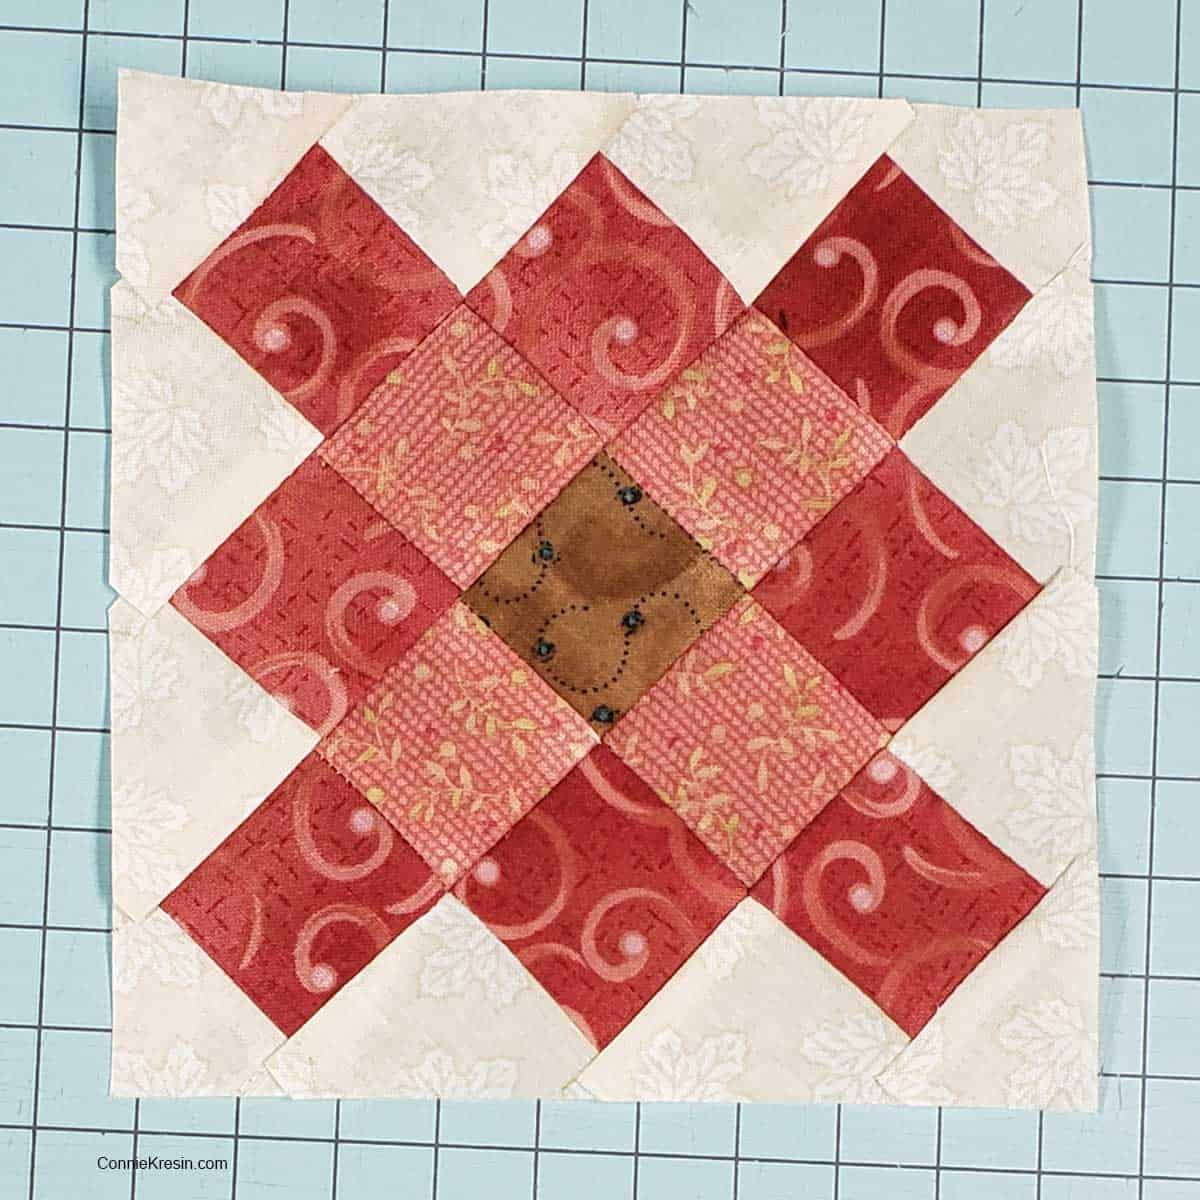 Completed granny square quilt block